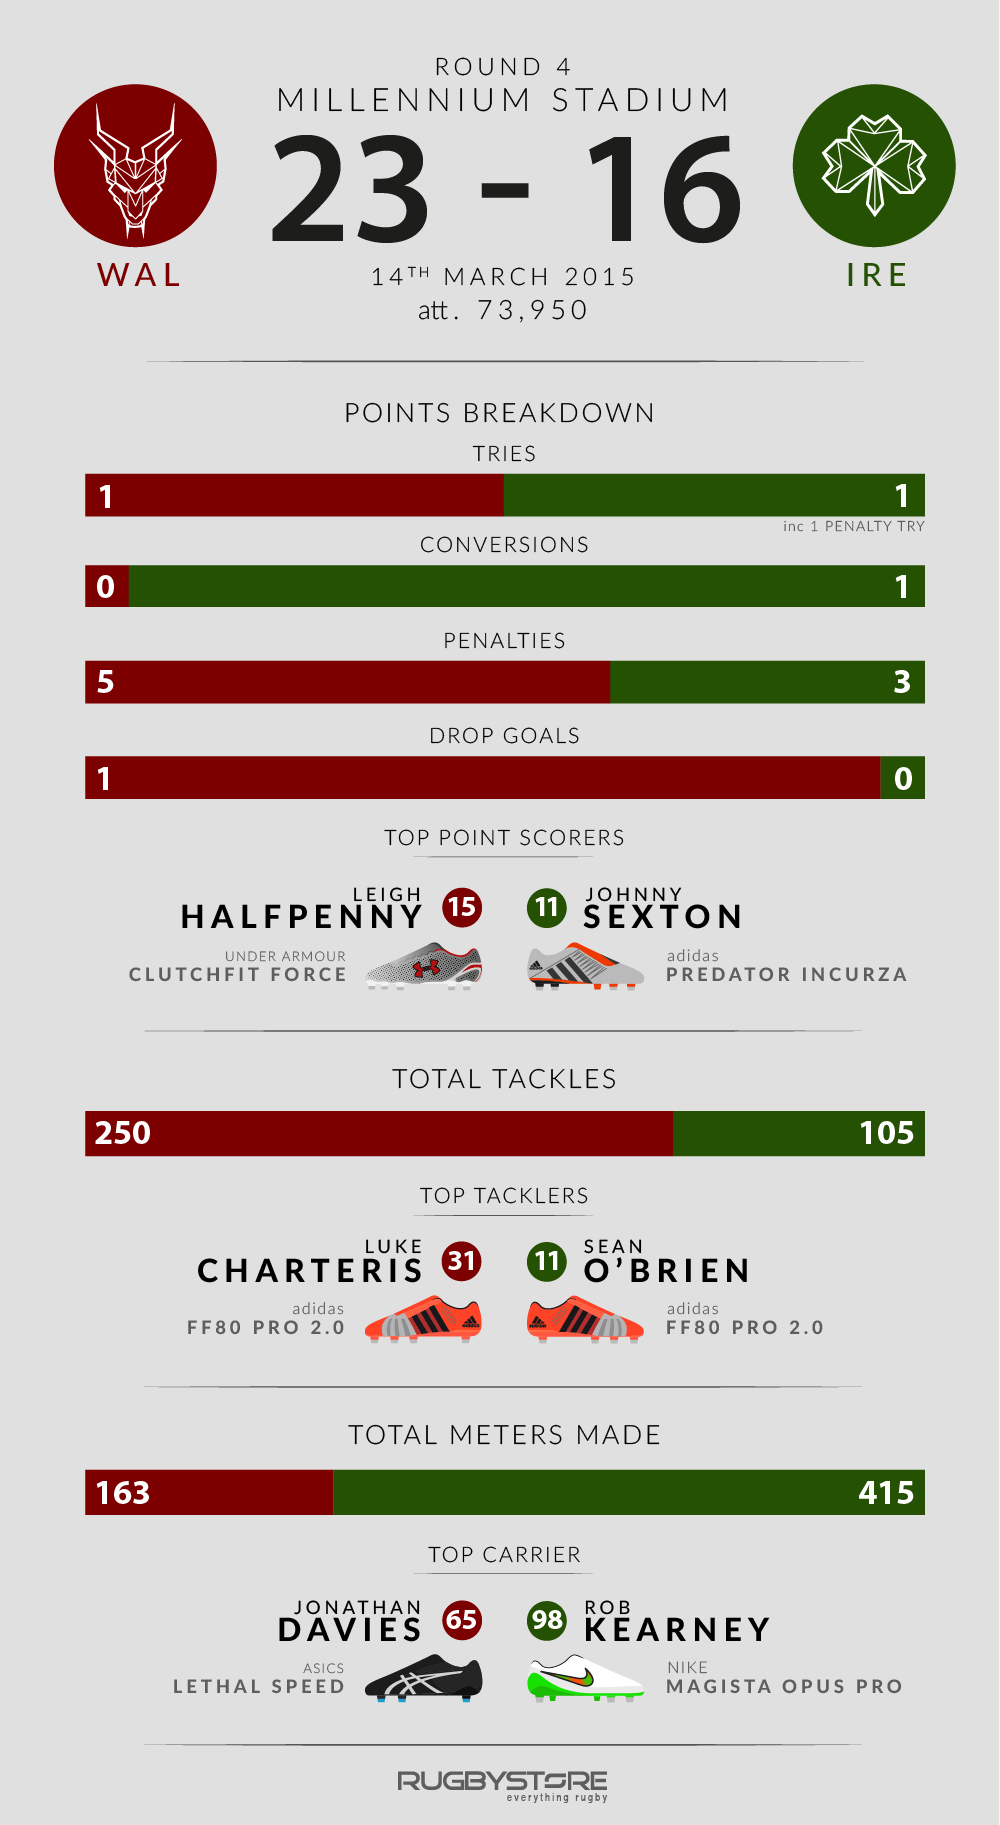 A breakdown of the key stats from Wales VS Ireland in the 6 Nations.